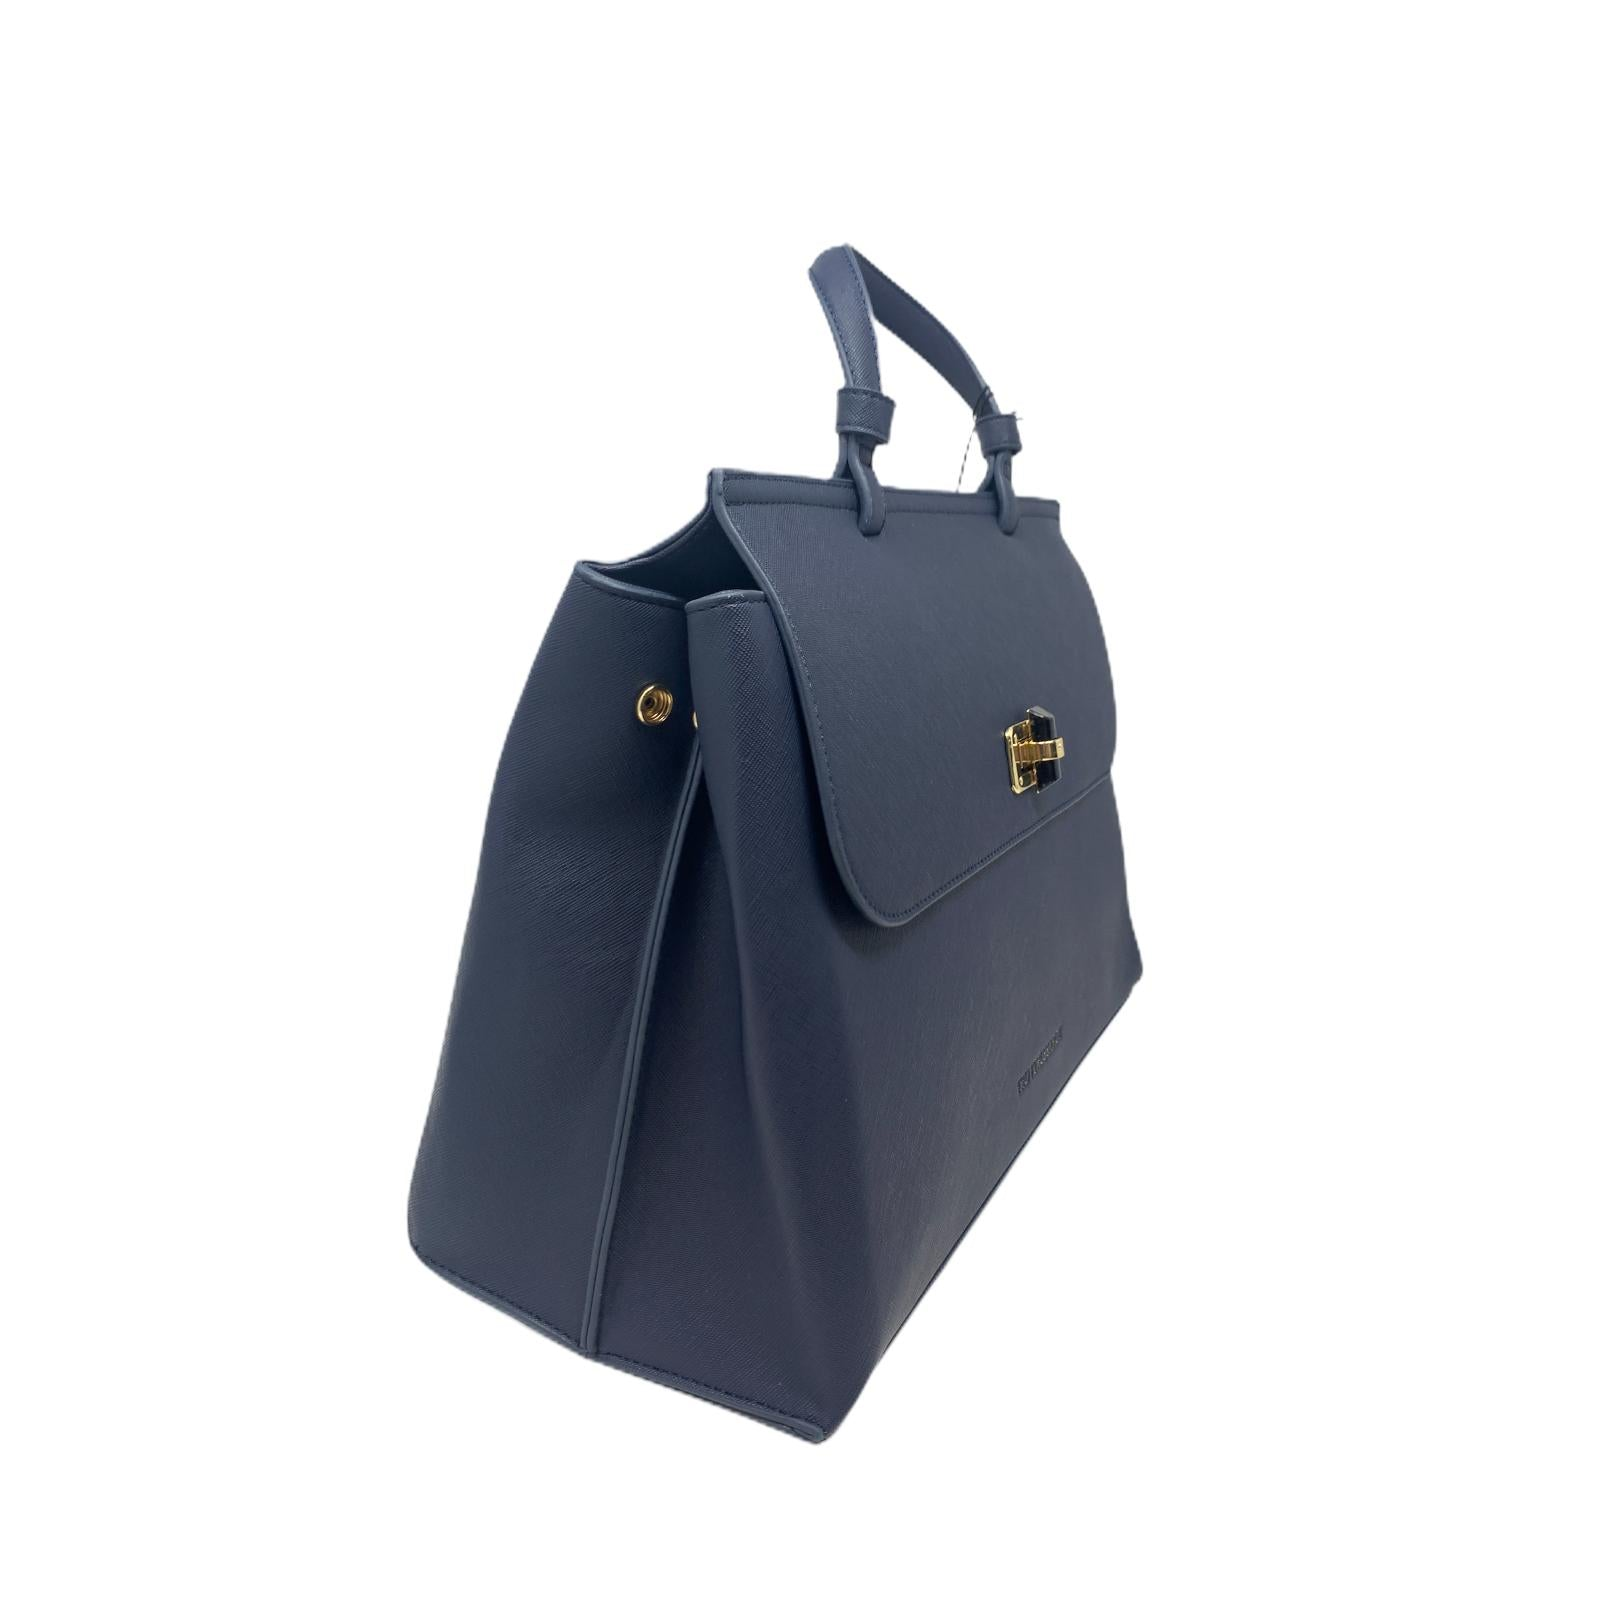 Borsa Tru Trussardi Shopper Bag Donna Blue Navy